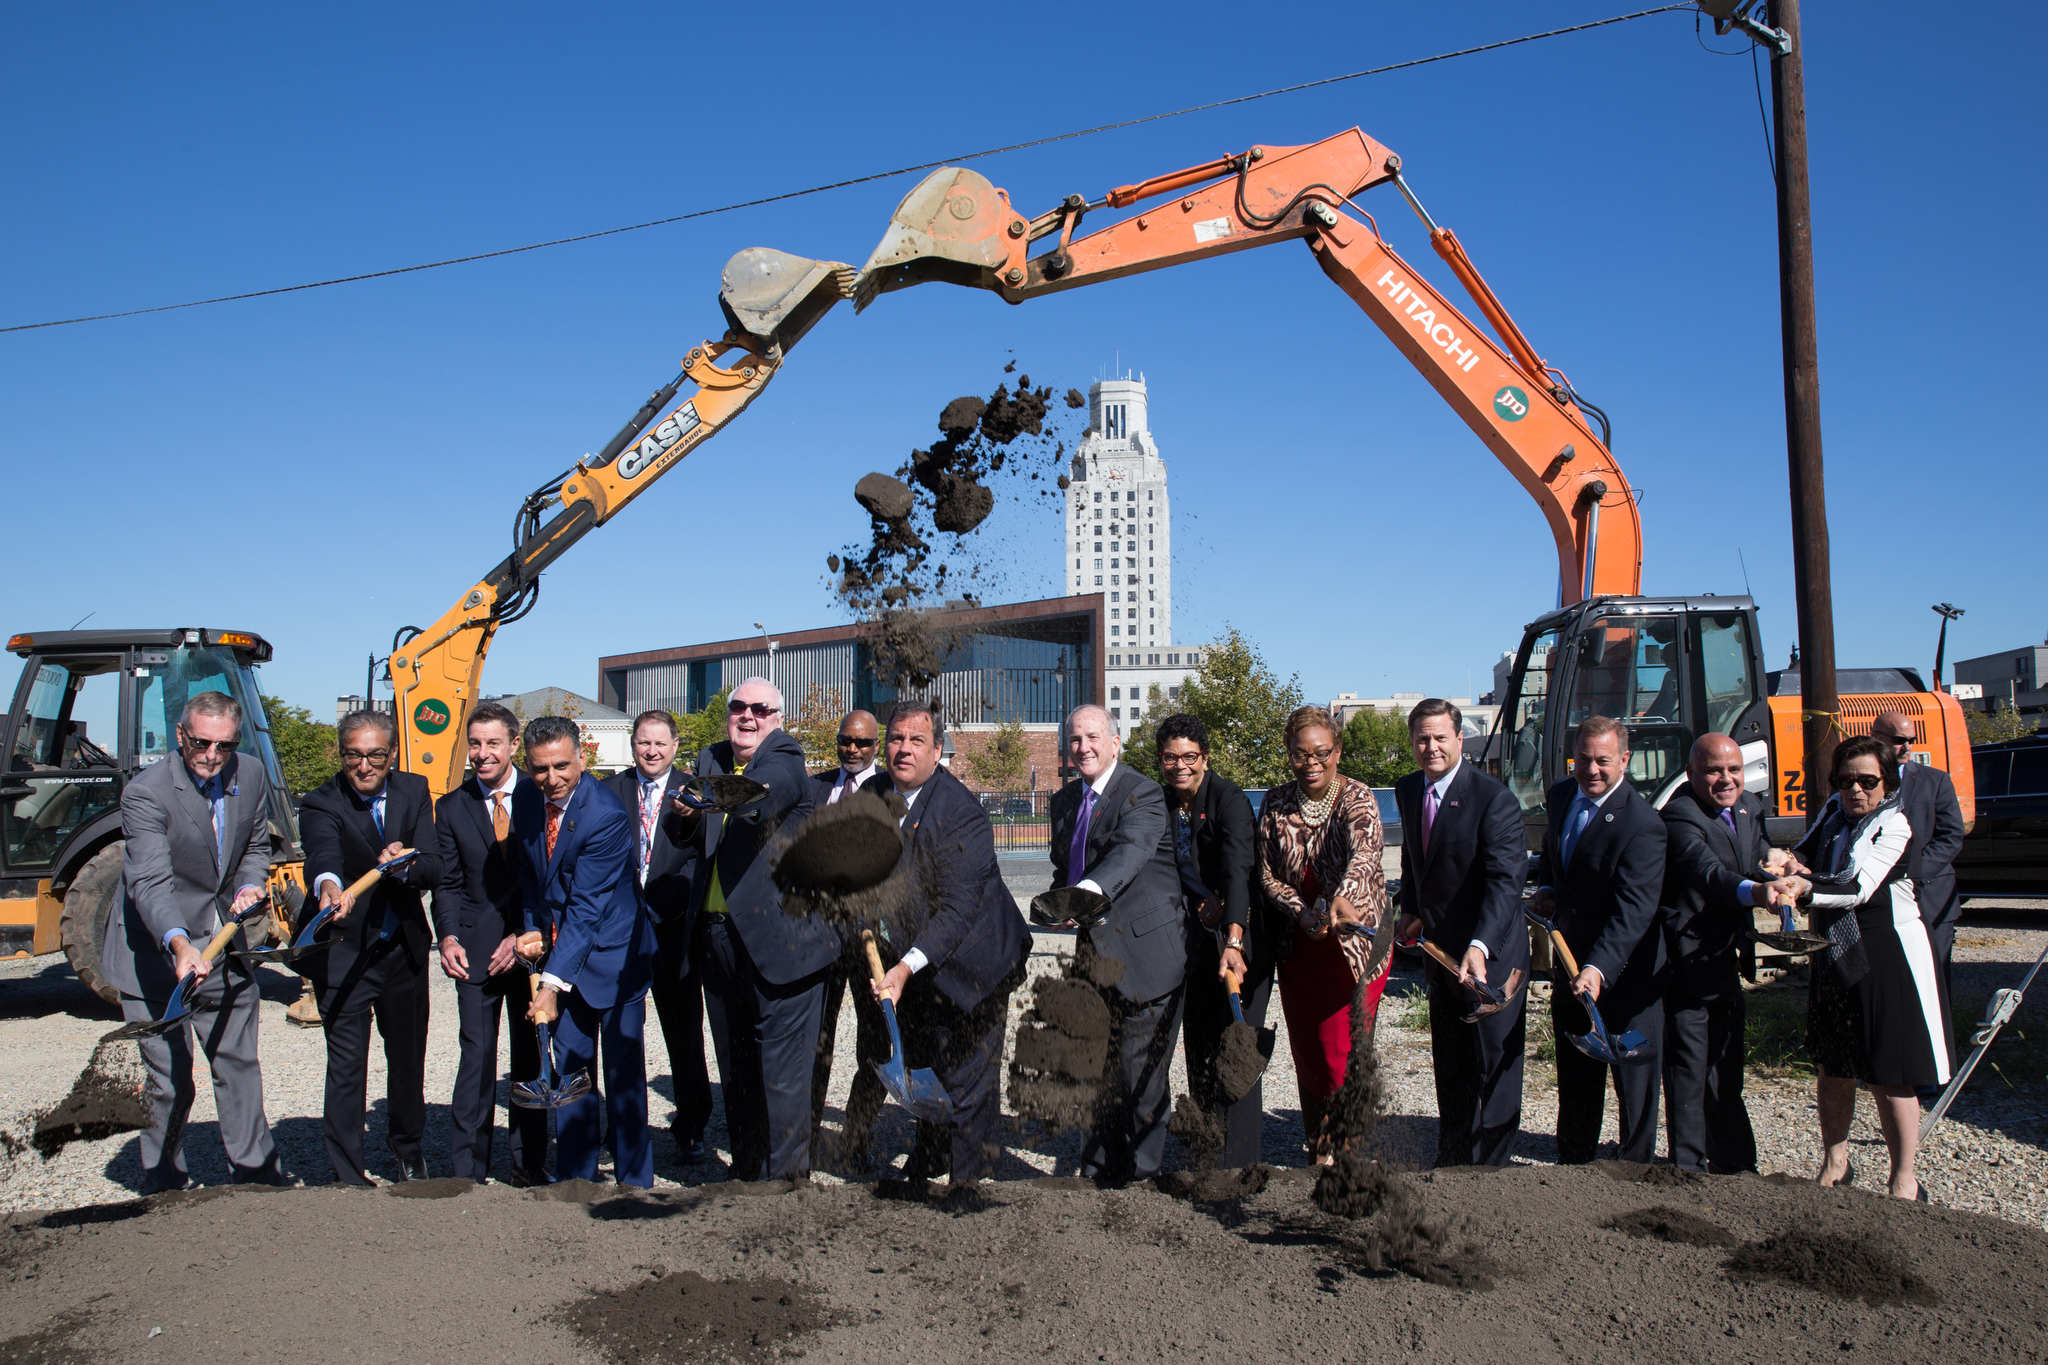 New Jersey Governor Christ Christie and other dignitaries participate in a ceremonial groundbreaking for the Rutgers-Rowan Health Sciences Building.